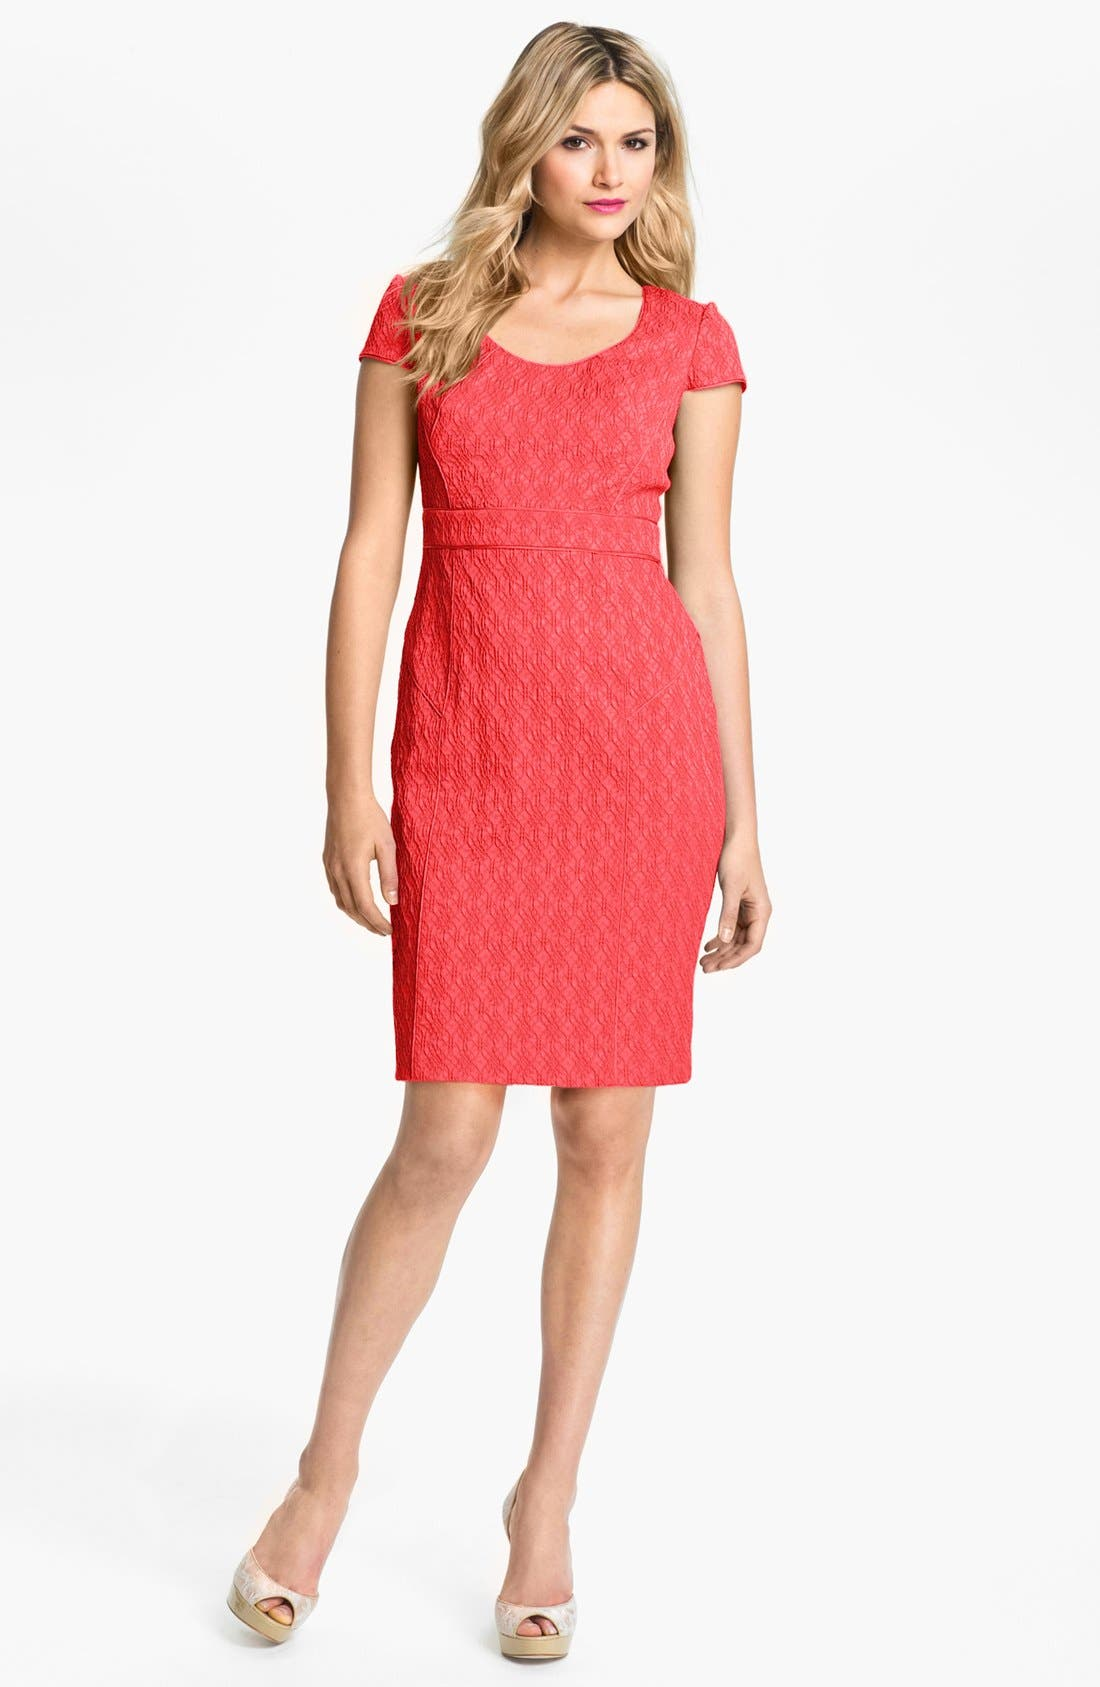 Main Image - Adrianna Papell Jacquard Sheath Dress